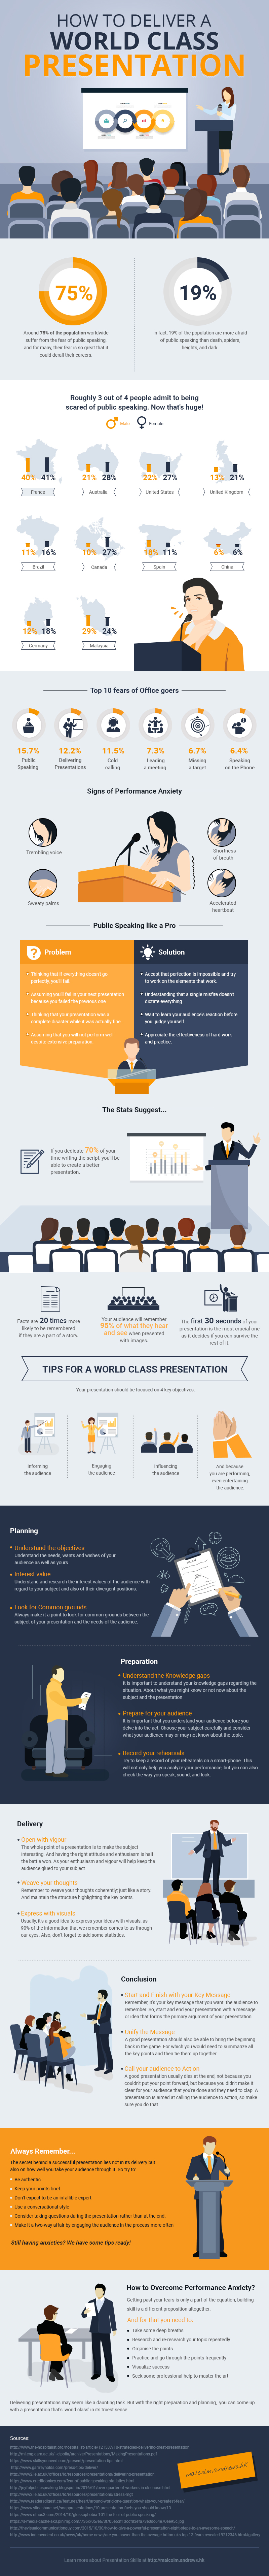 How to Deliver a World Class Presentation 1